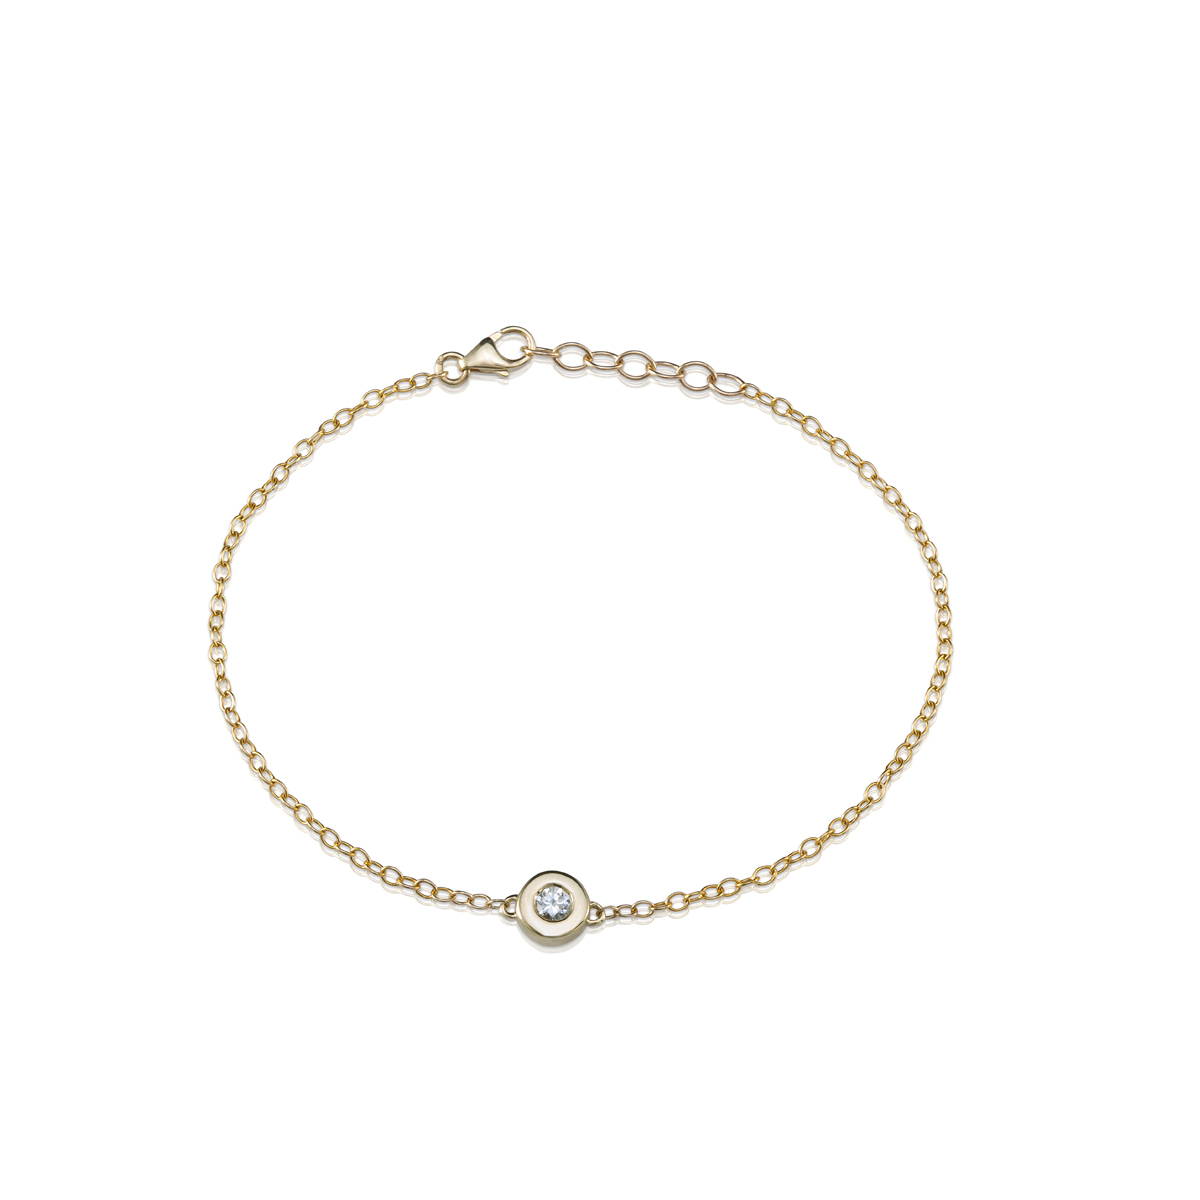 Gold bracelet set with 0.15ct diamond